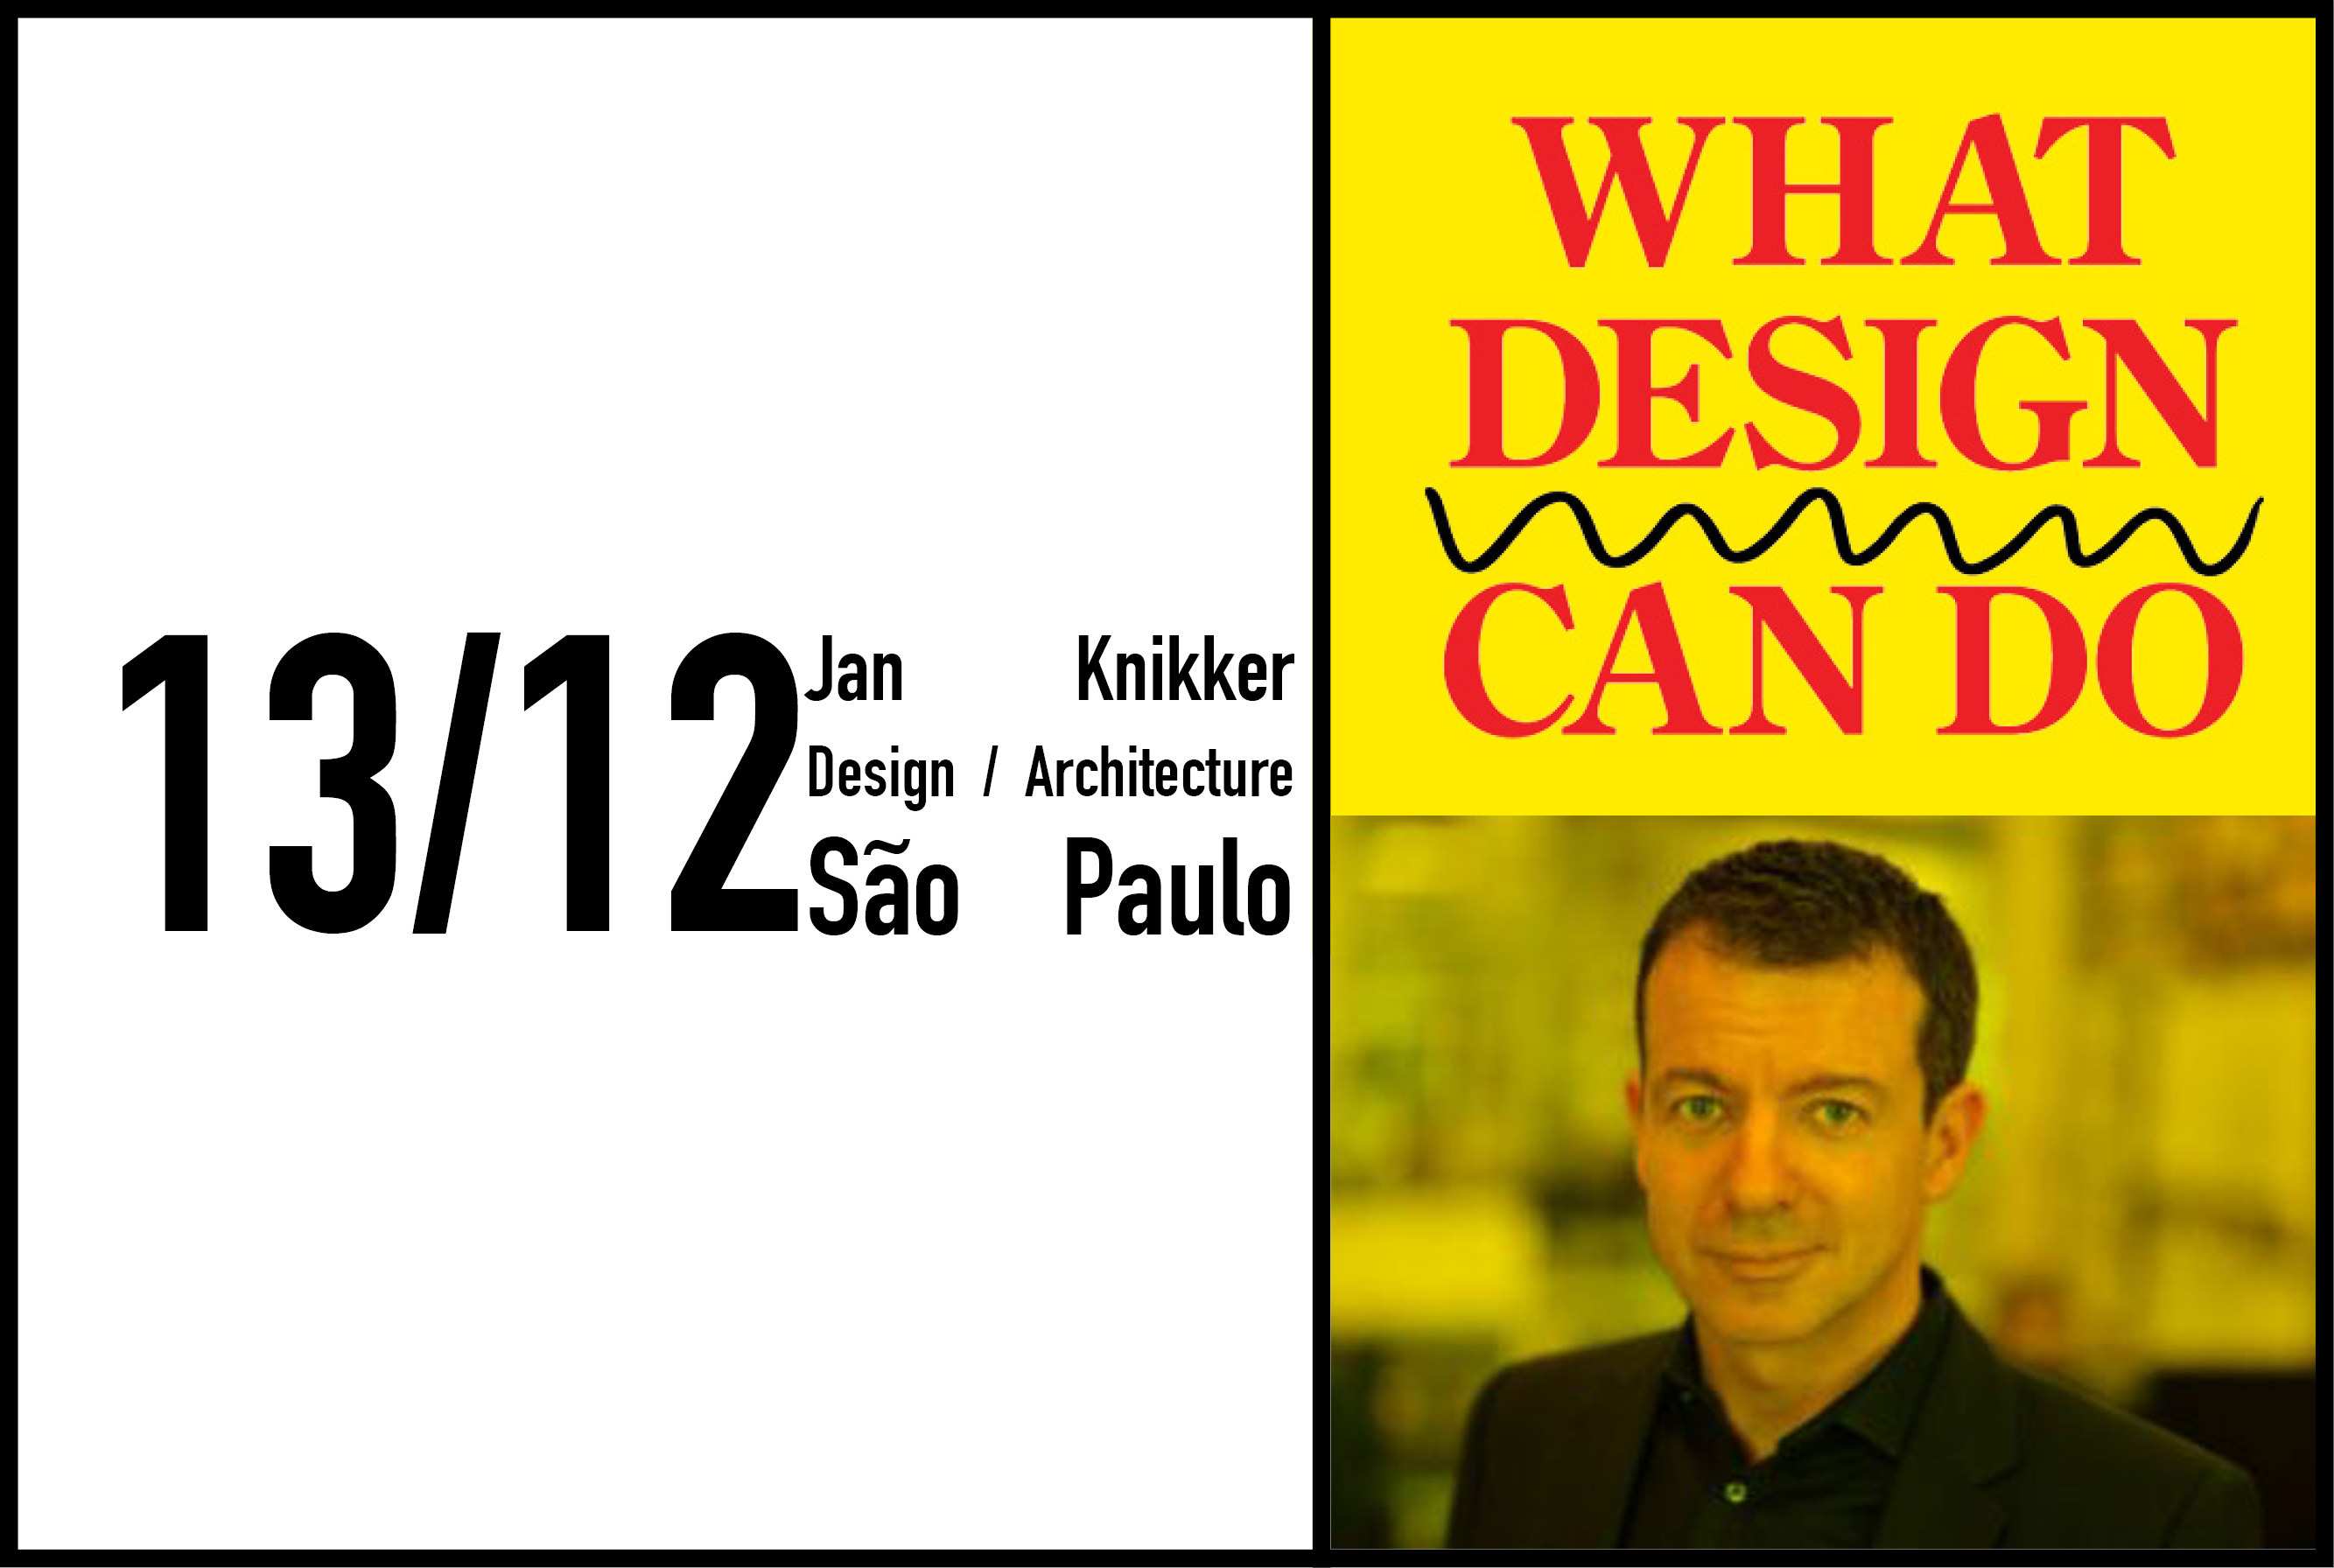 Jan Knikker to give a lecture at What Design Can Do Brazilian Edition, 13th December 2016